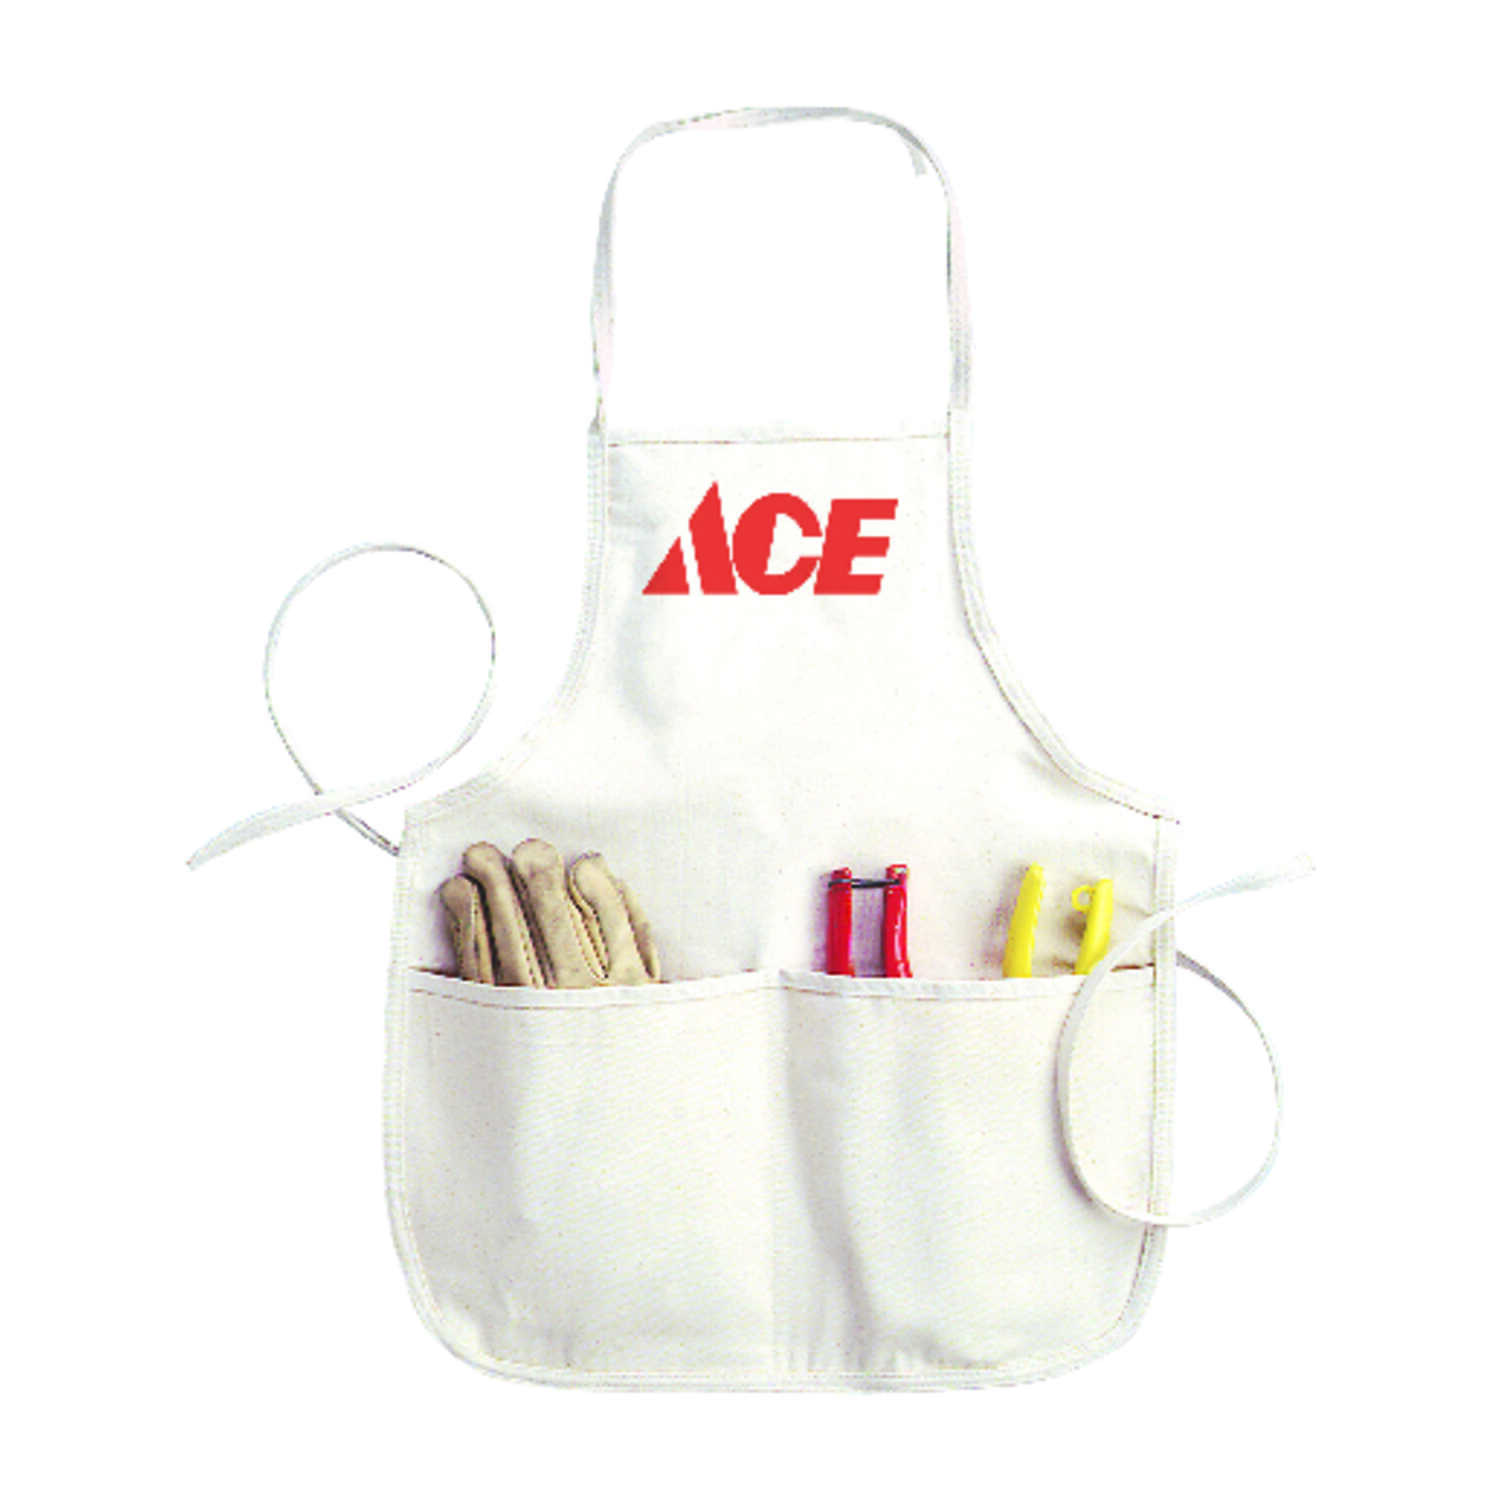 Ace  Heavy Duty 4  Cotton  White  1 pk Bib Apron